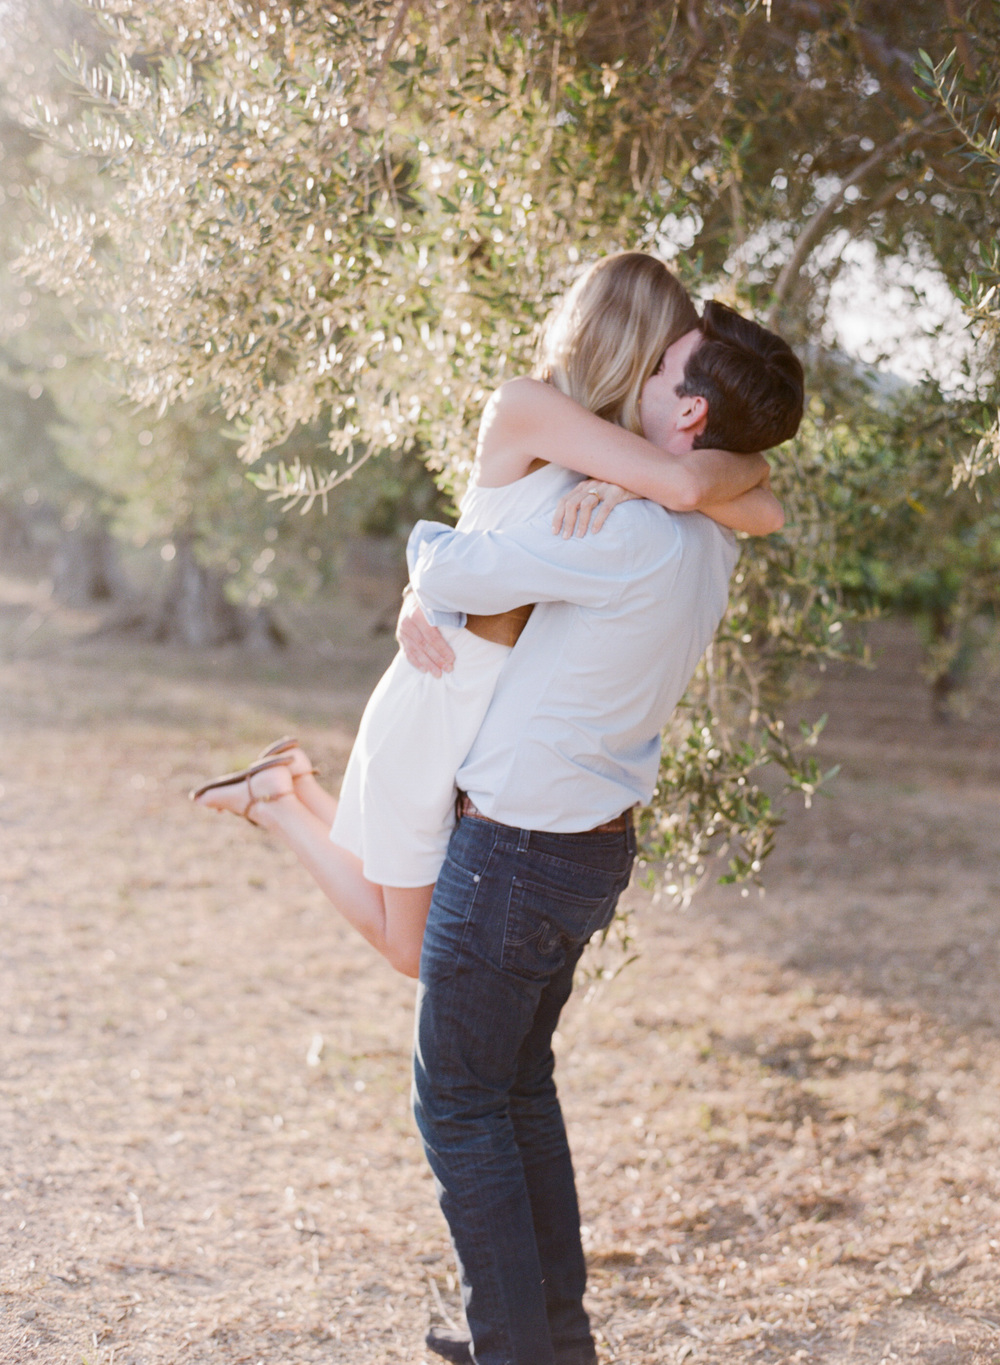 A bride-to-be jumps into her fiancee's arms in a Napa Valley vineyard  during an engagement session with Sylvie Gil.